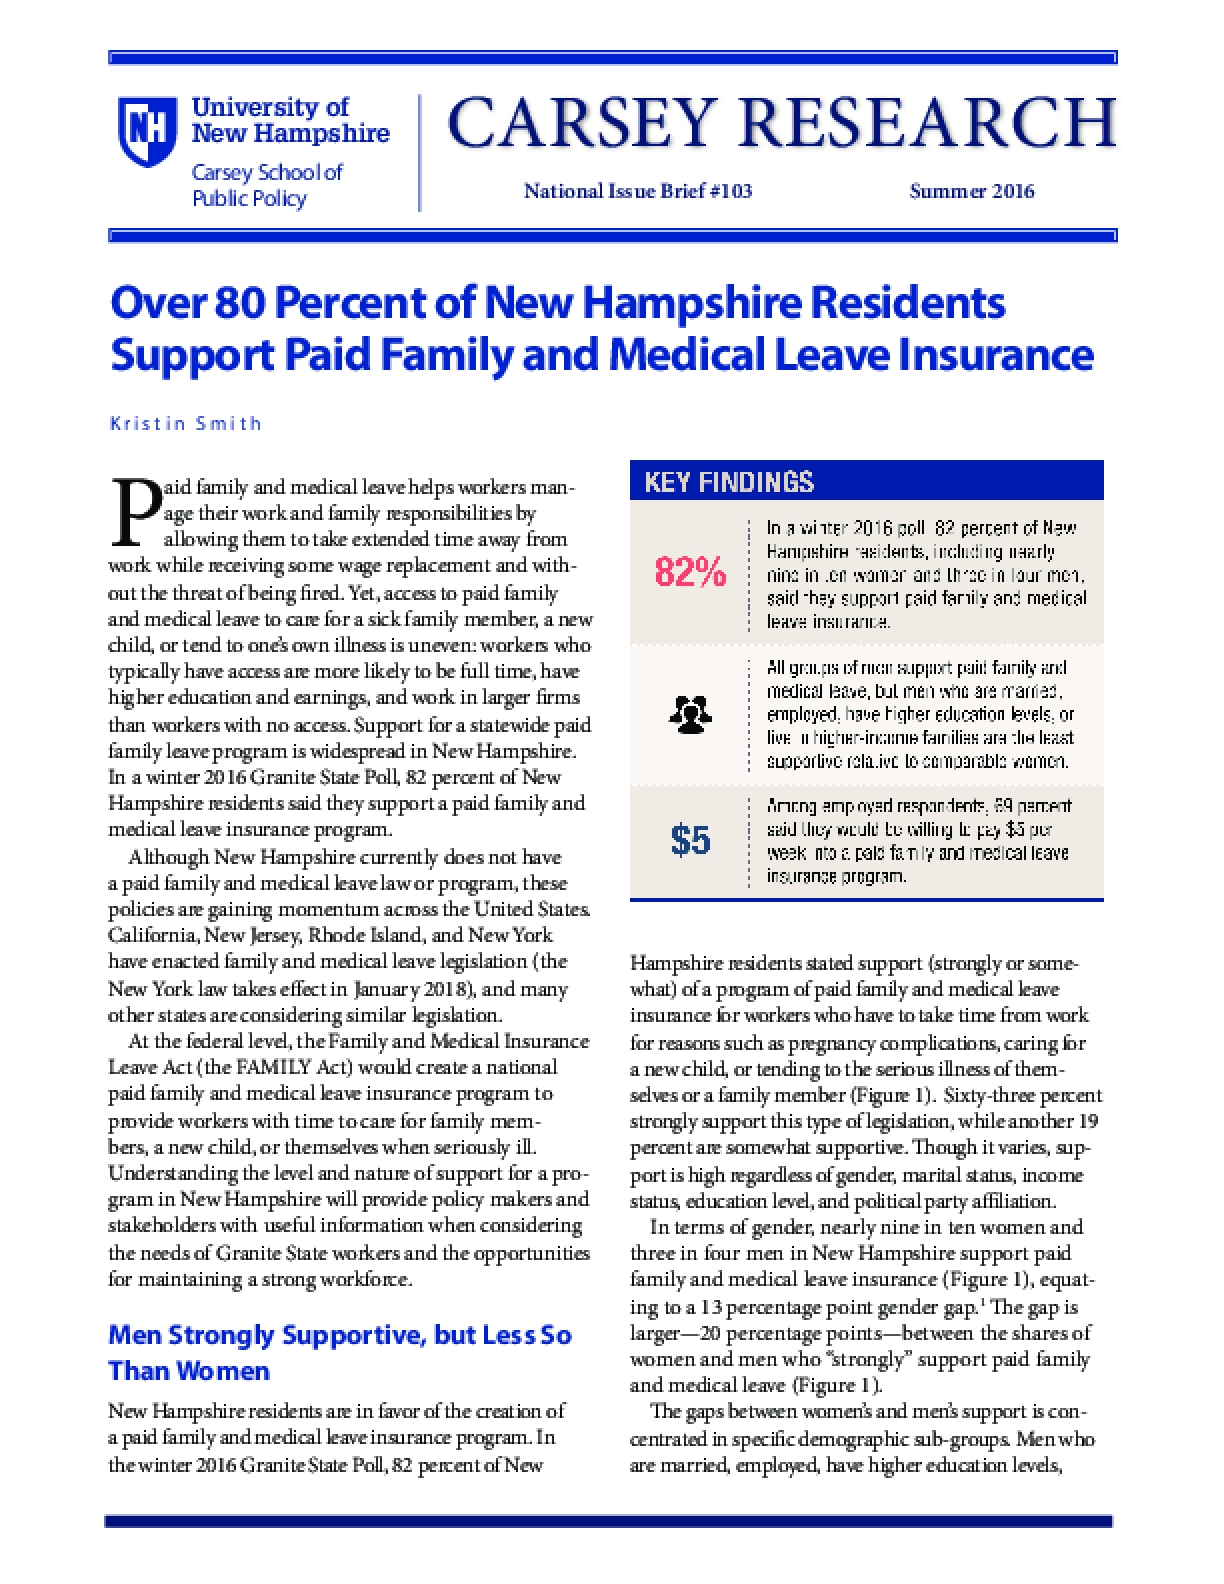 Over 80 Percent of New Hampshire Residents Support Paid Family and Medical Leave Insurance